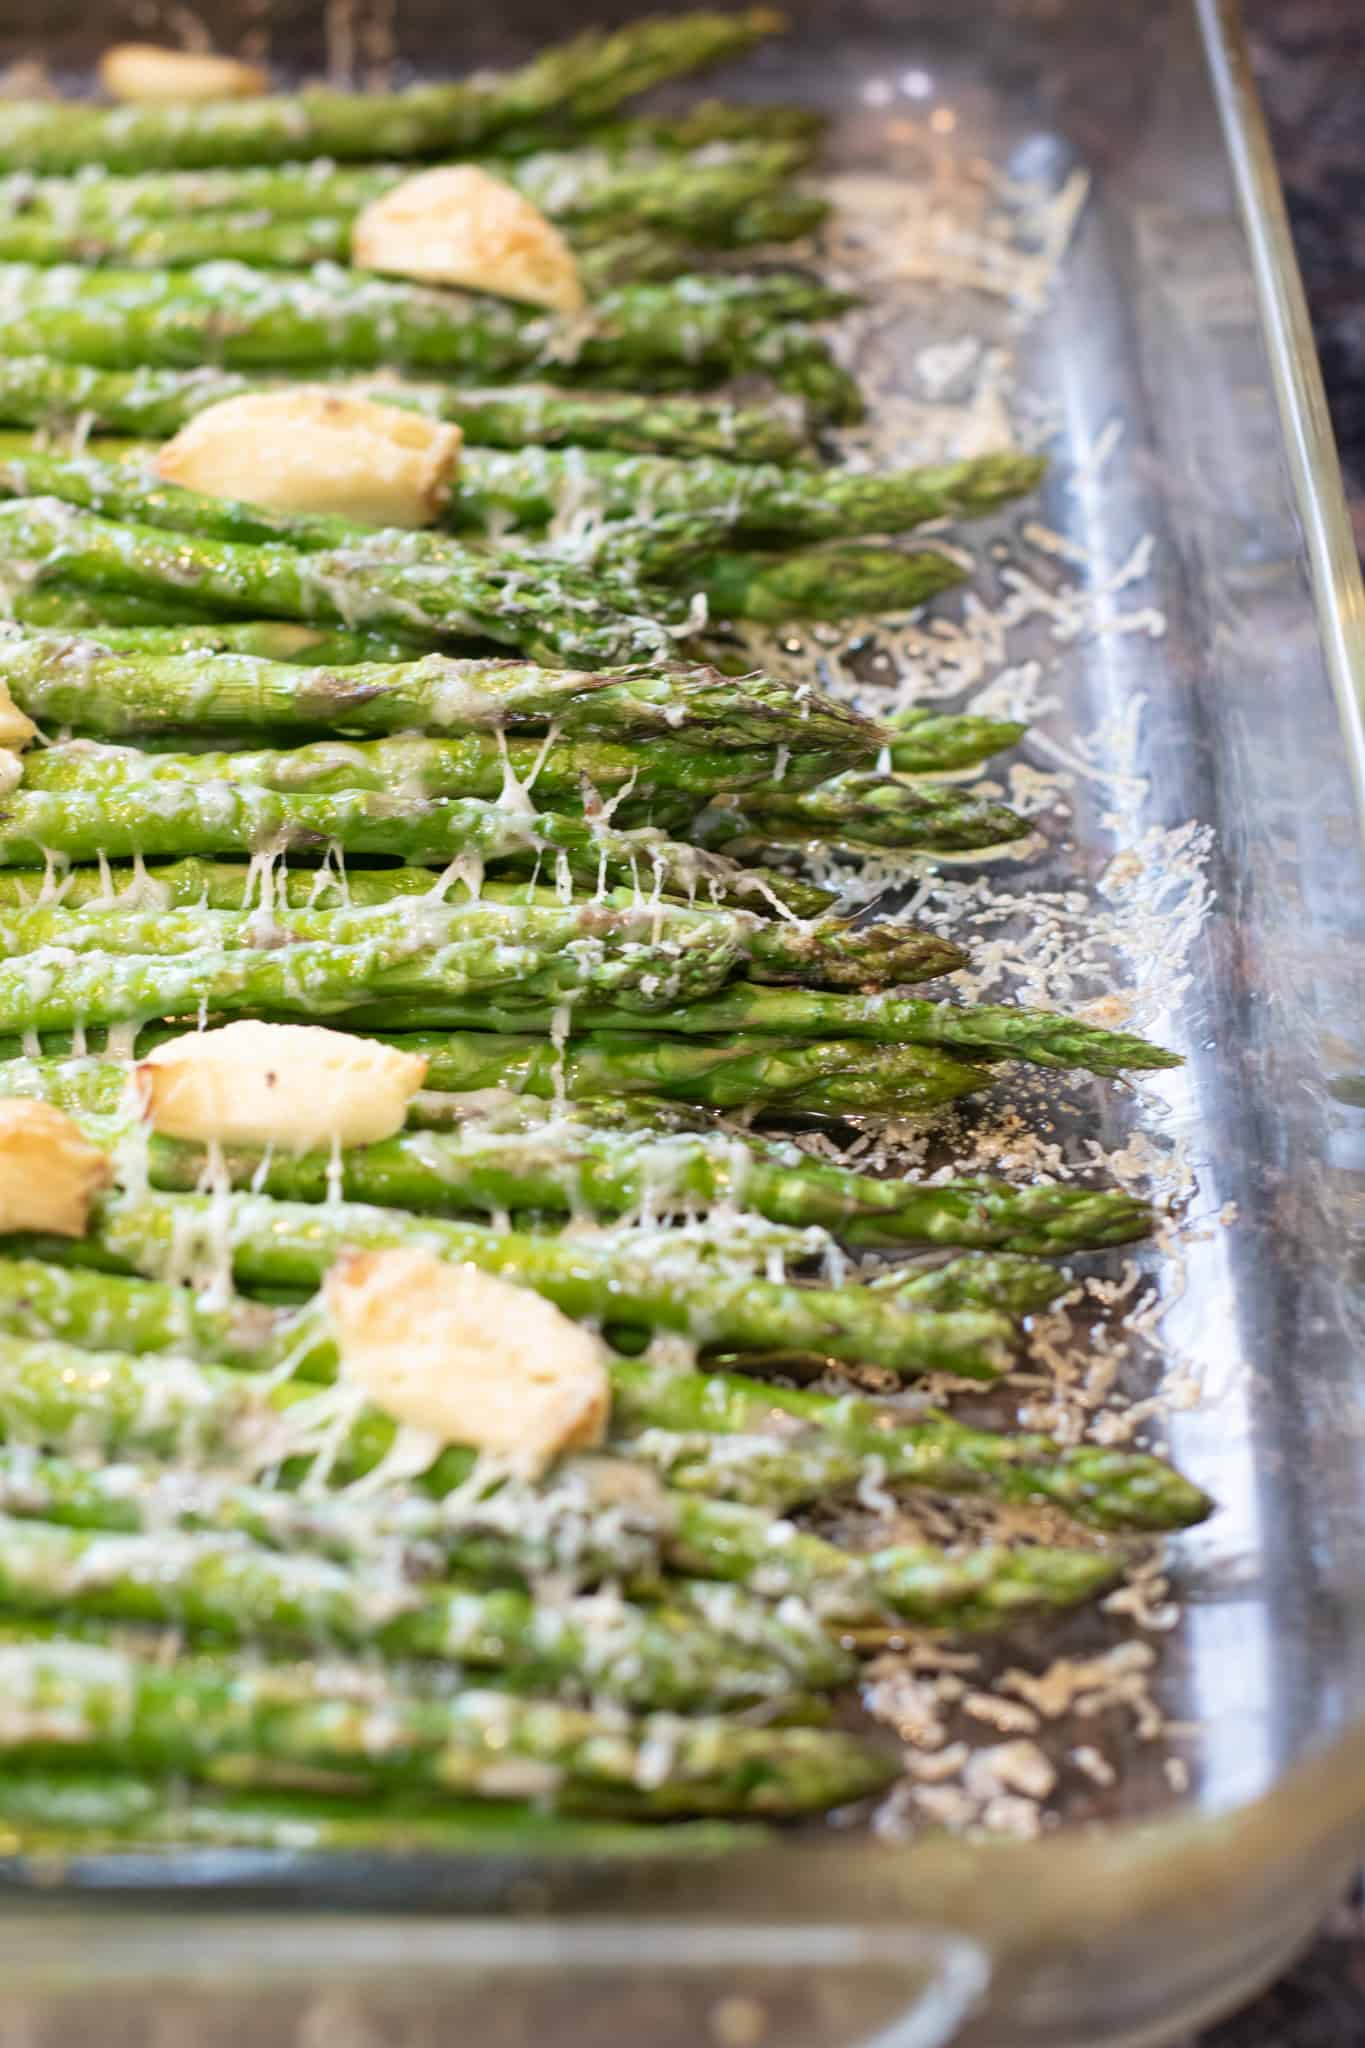 These Garlic and Gruyere Roasted Asparagus are an incredibly easy side dish to make that's full of flavor from fresh garlic and cheese! #asparagus #roasted #oven #recipes #glutenfree